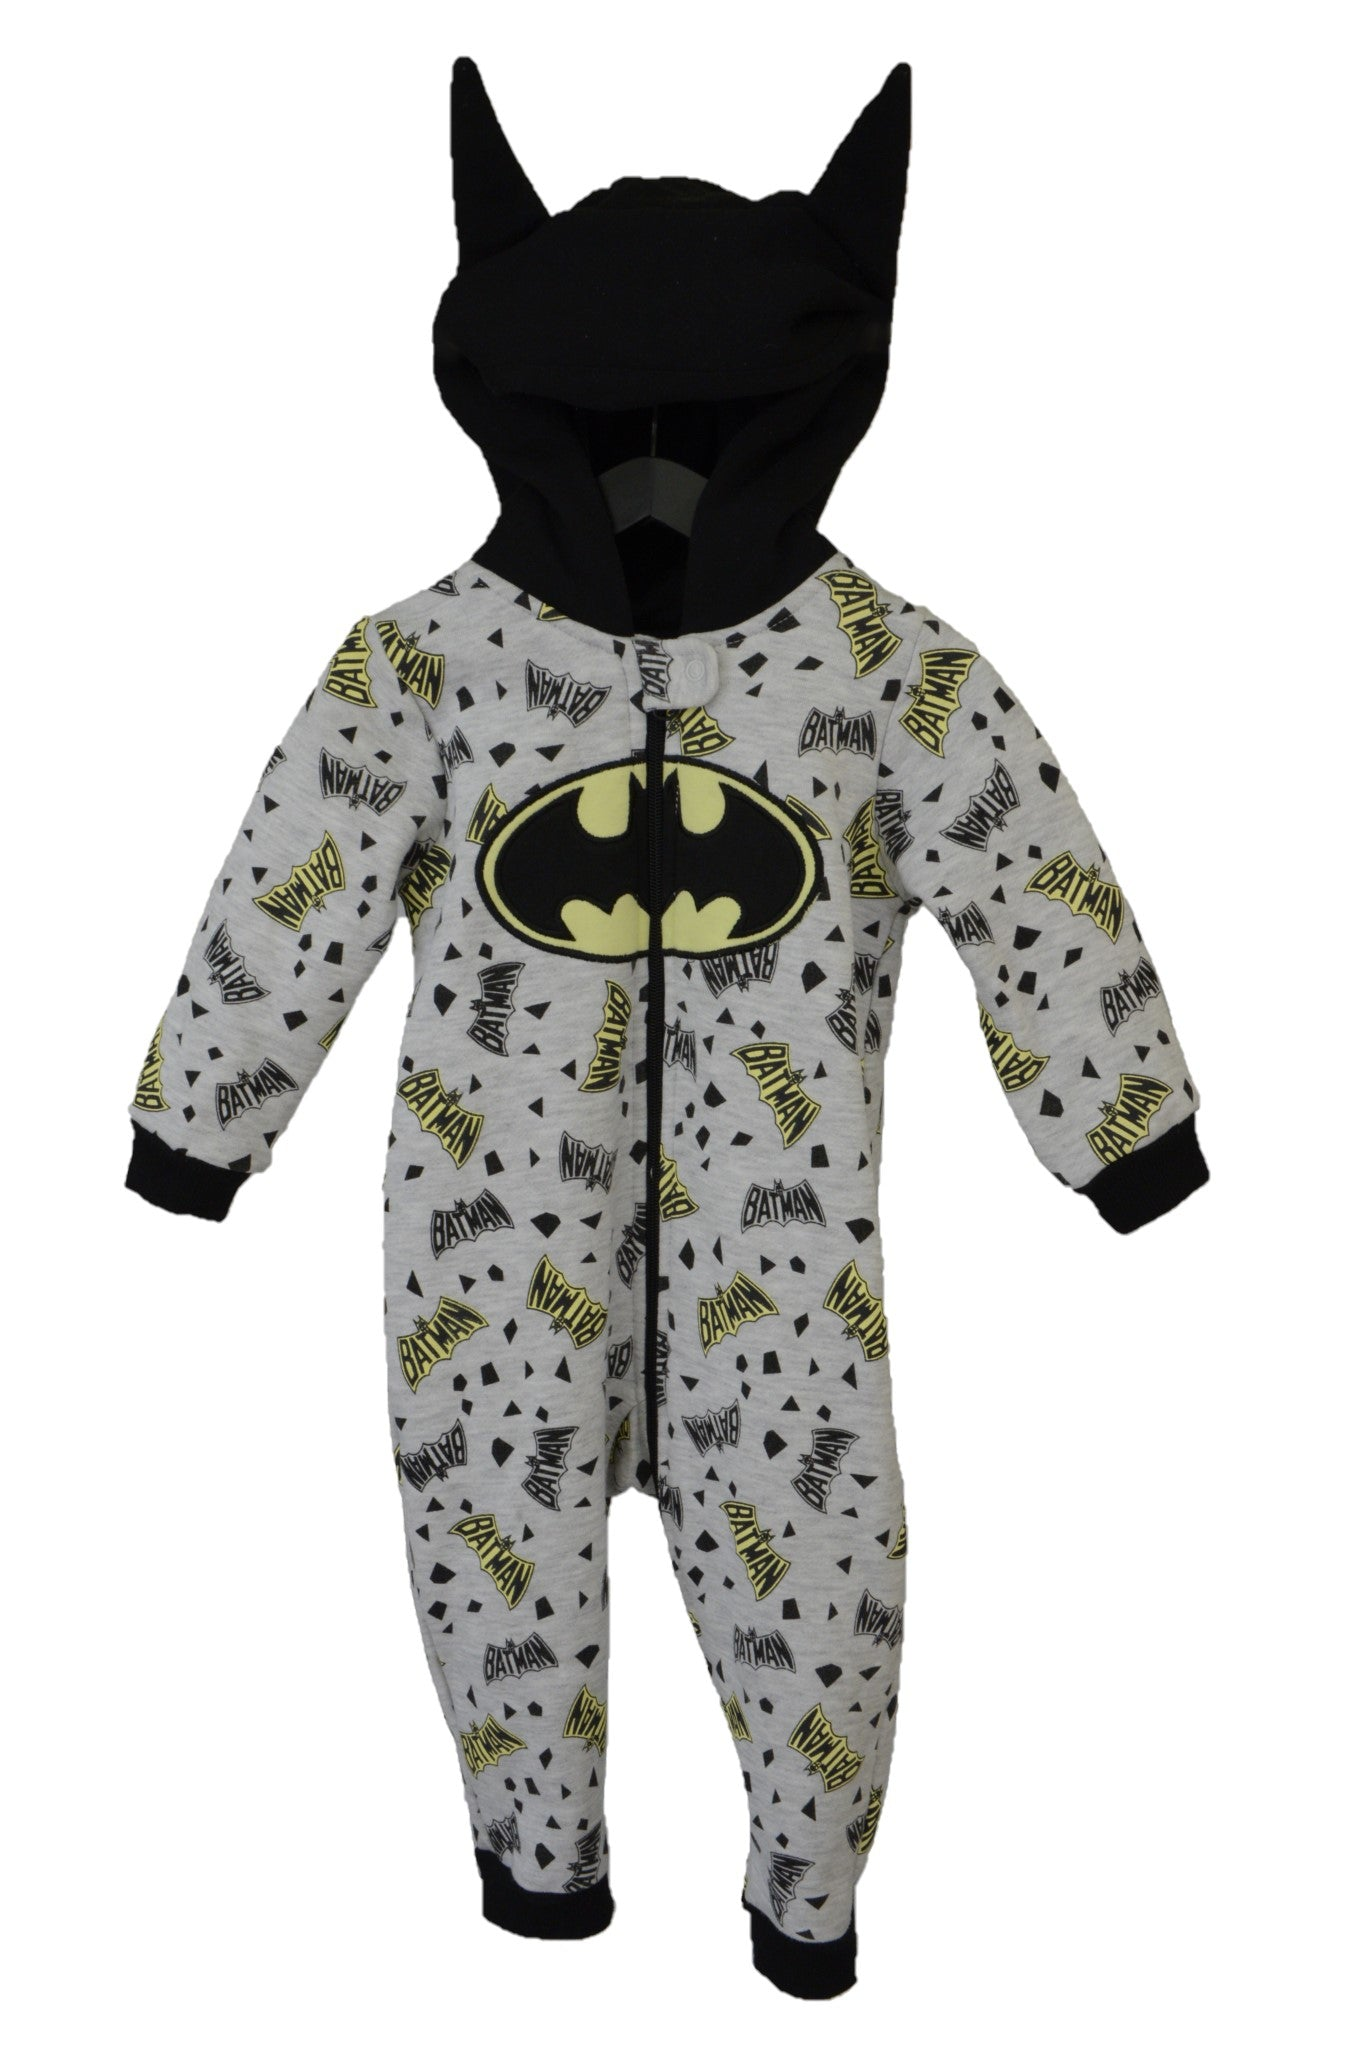 DC Comics Batman baby grey and yellow onesie with hood.